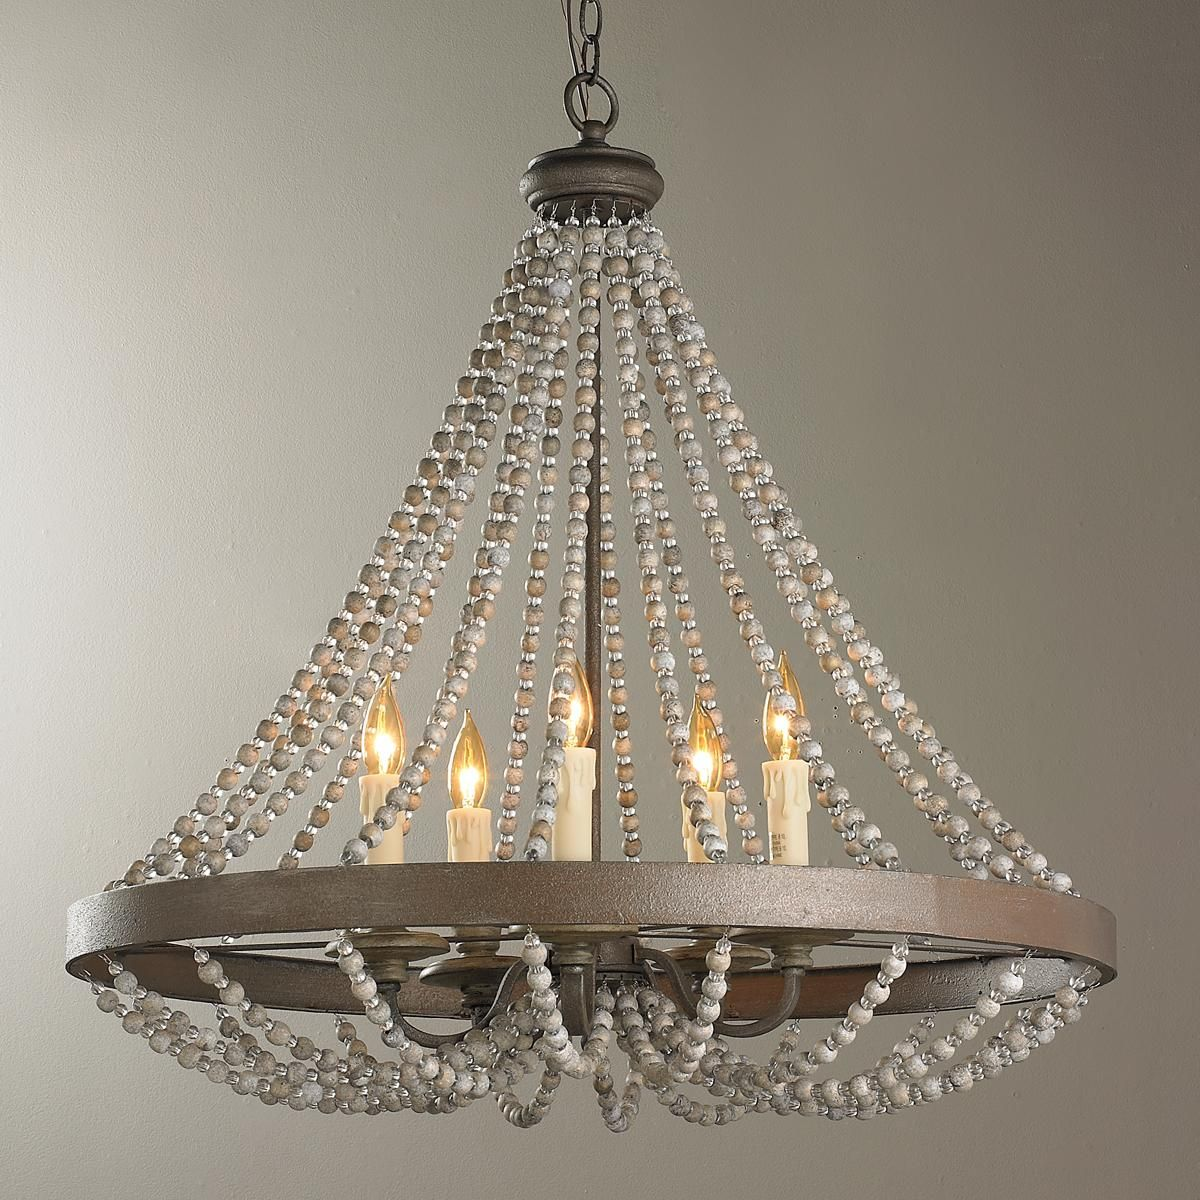 Rustic French Country Beaded Chandelier